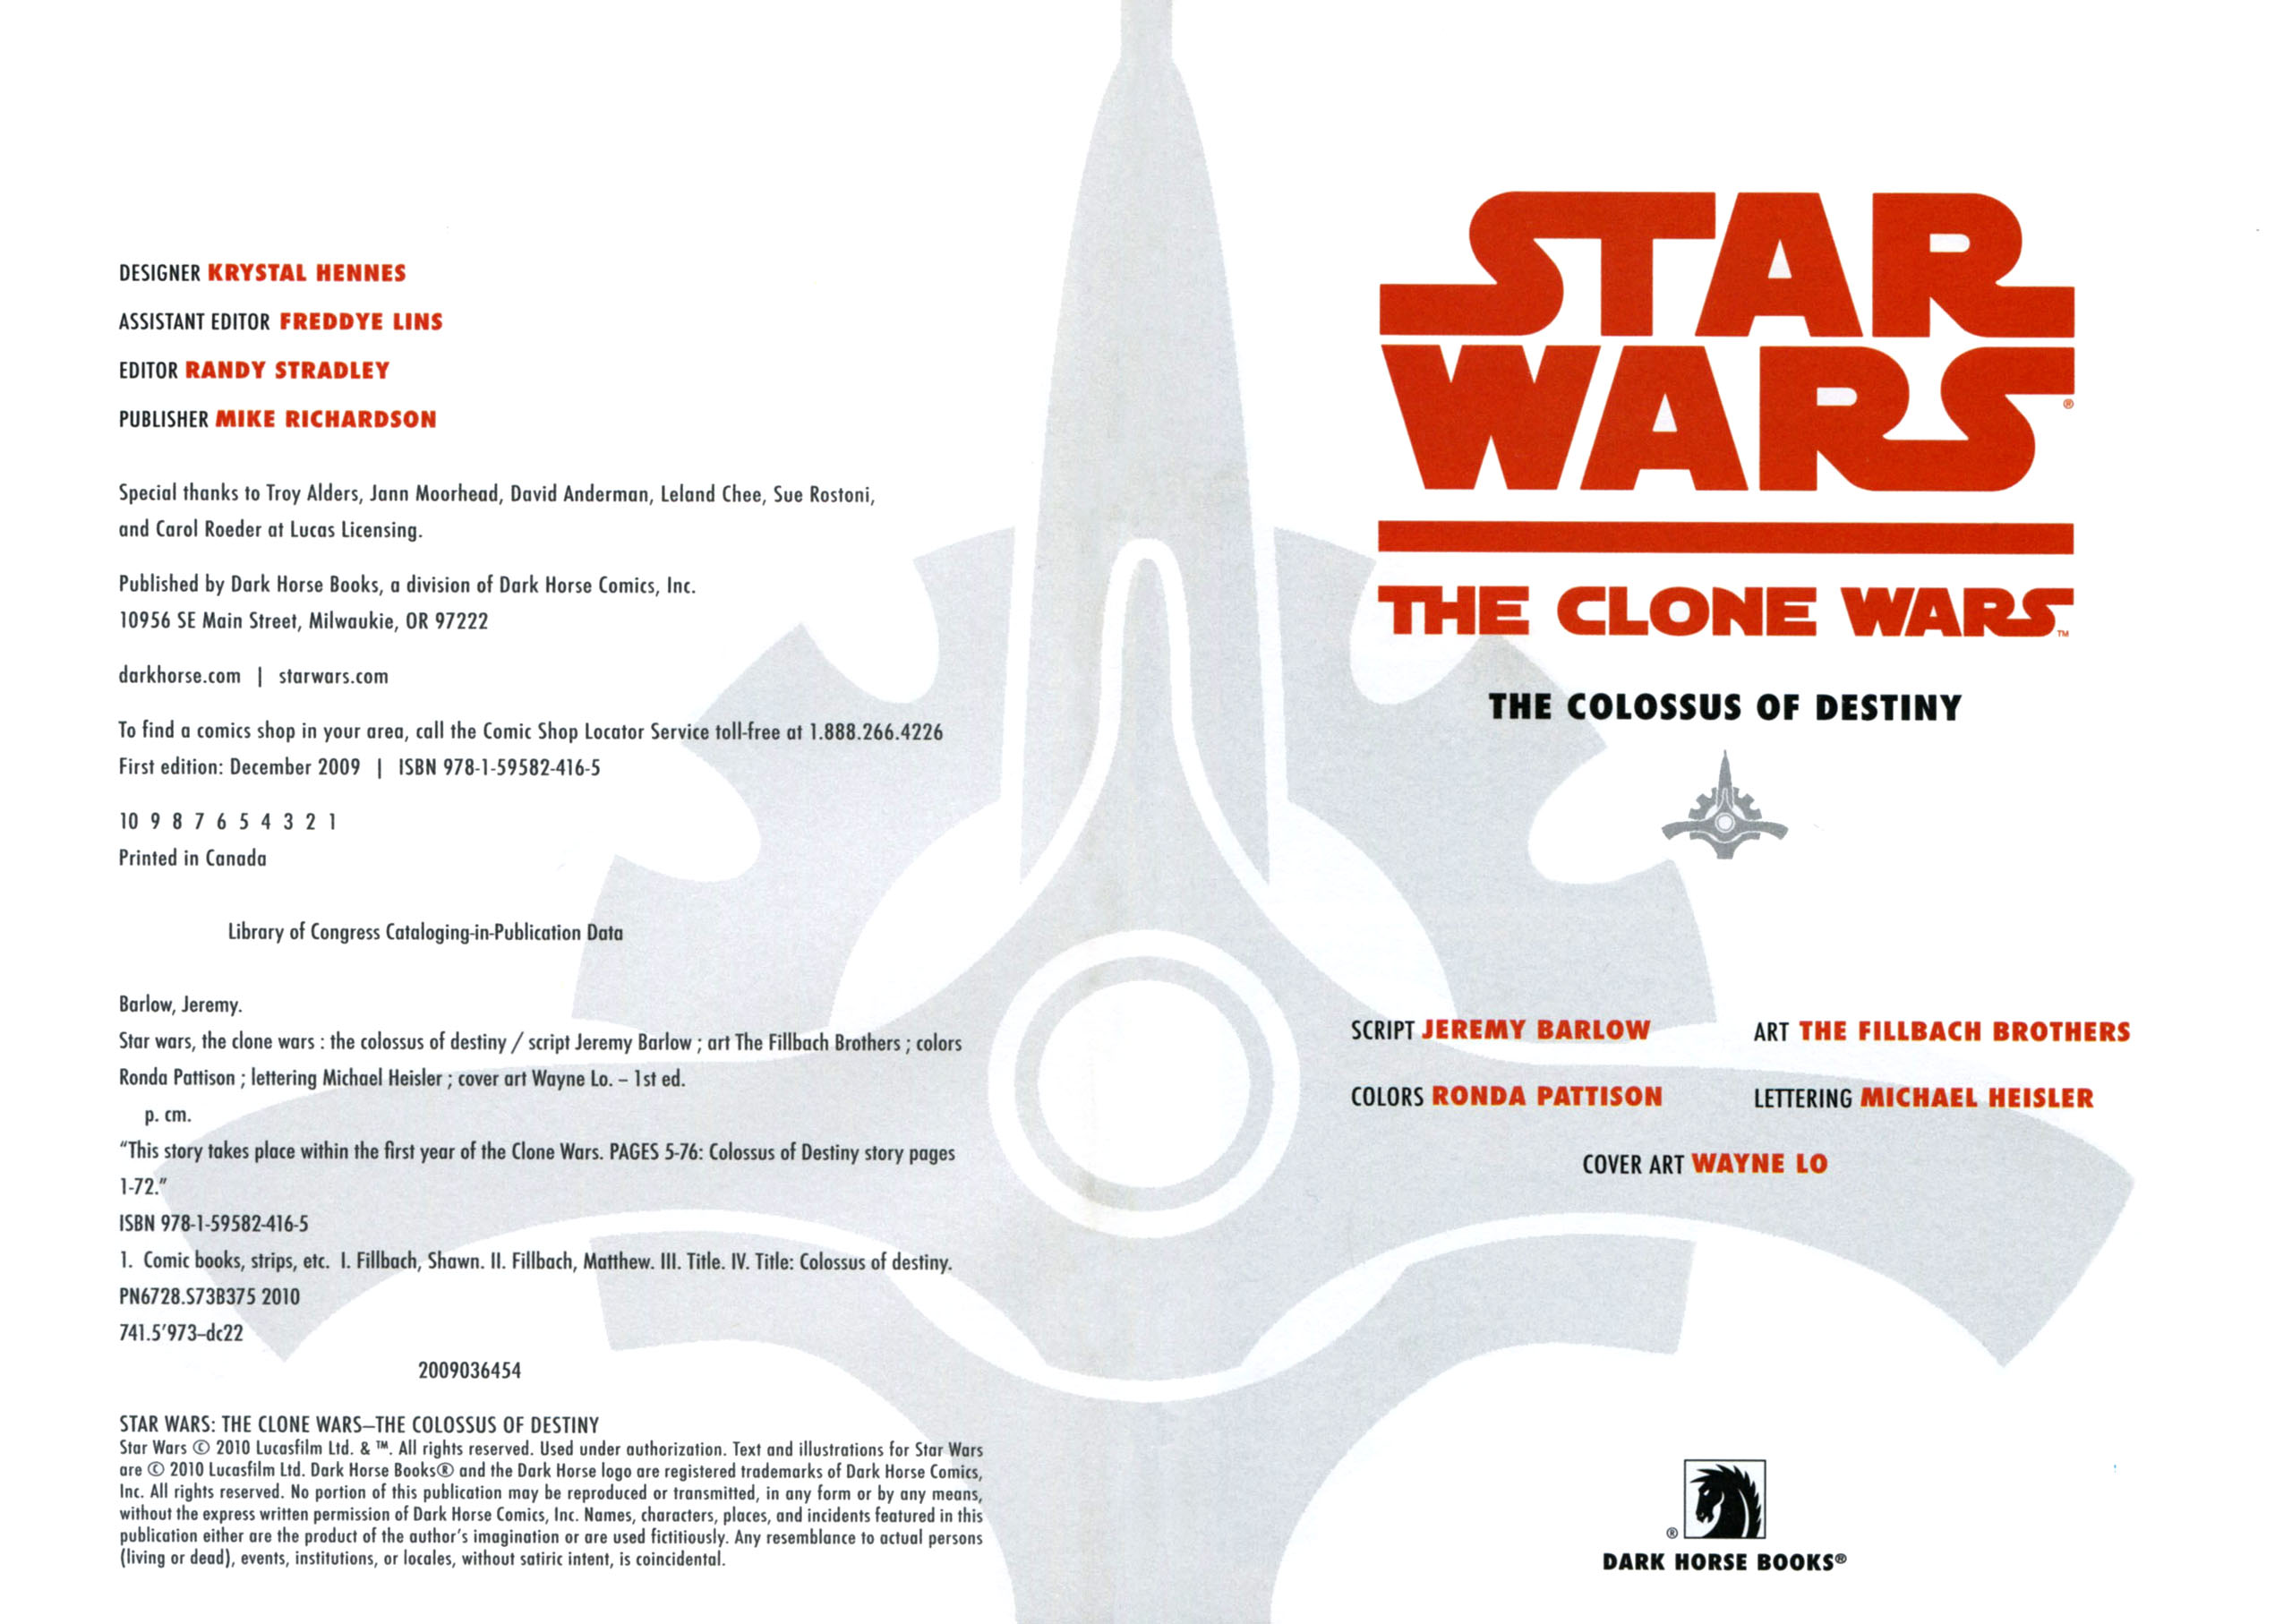 Read online Star Wars: The Clone Wars - The Colossus of Destiny comic -  Issue # Full - 4